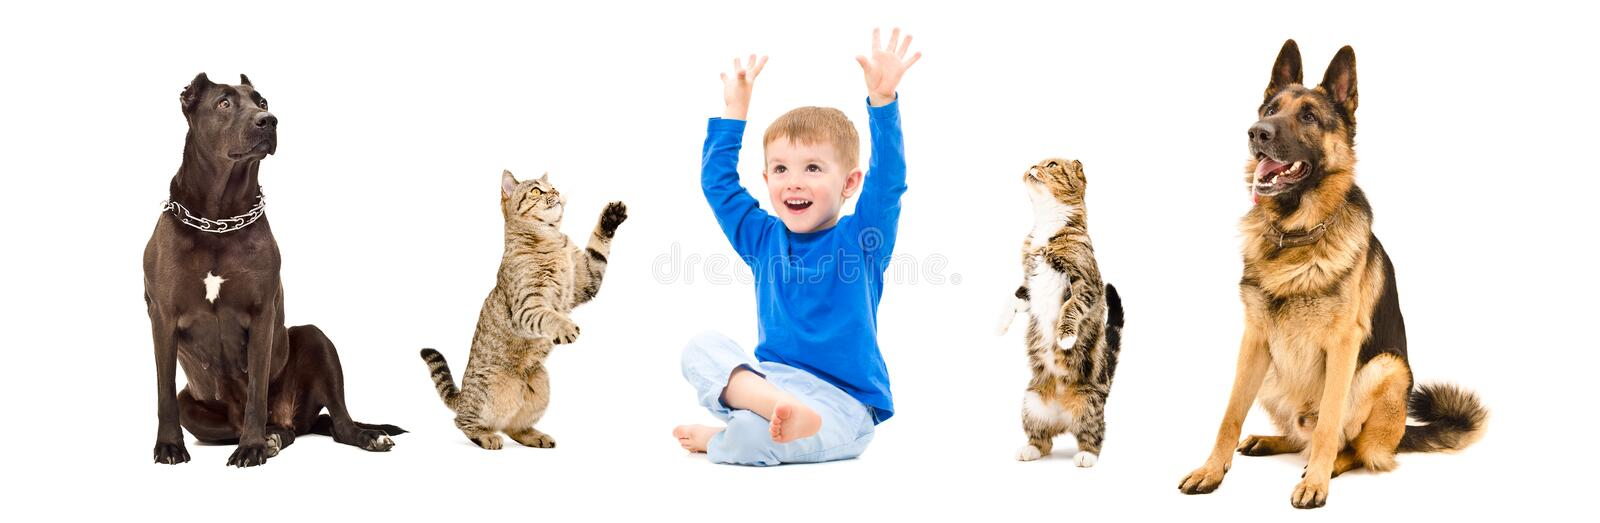 Group of a playful pets and happy child together stock image